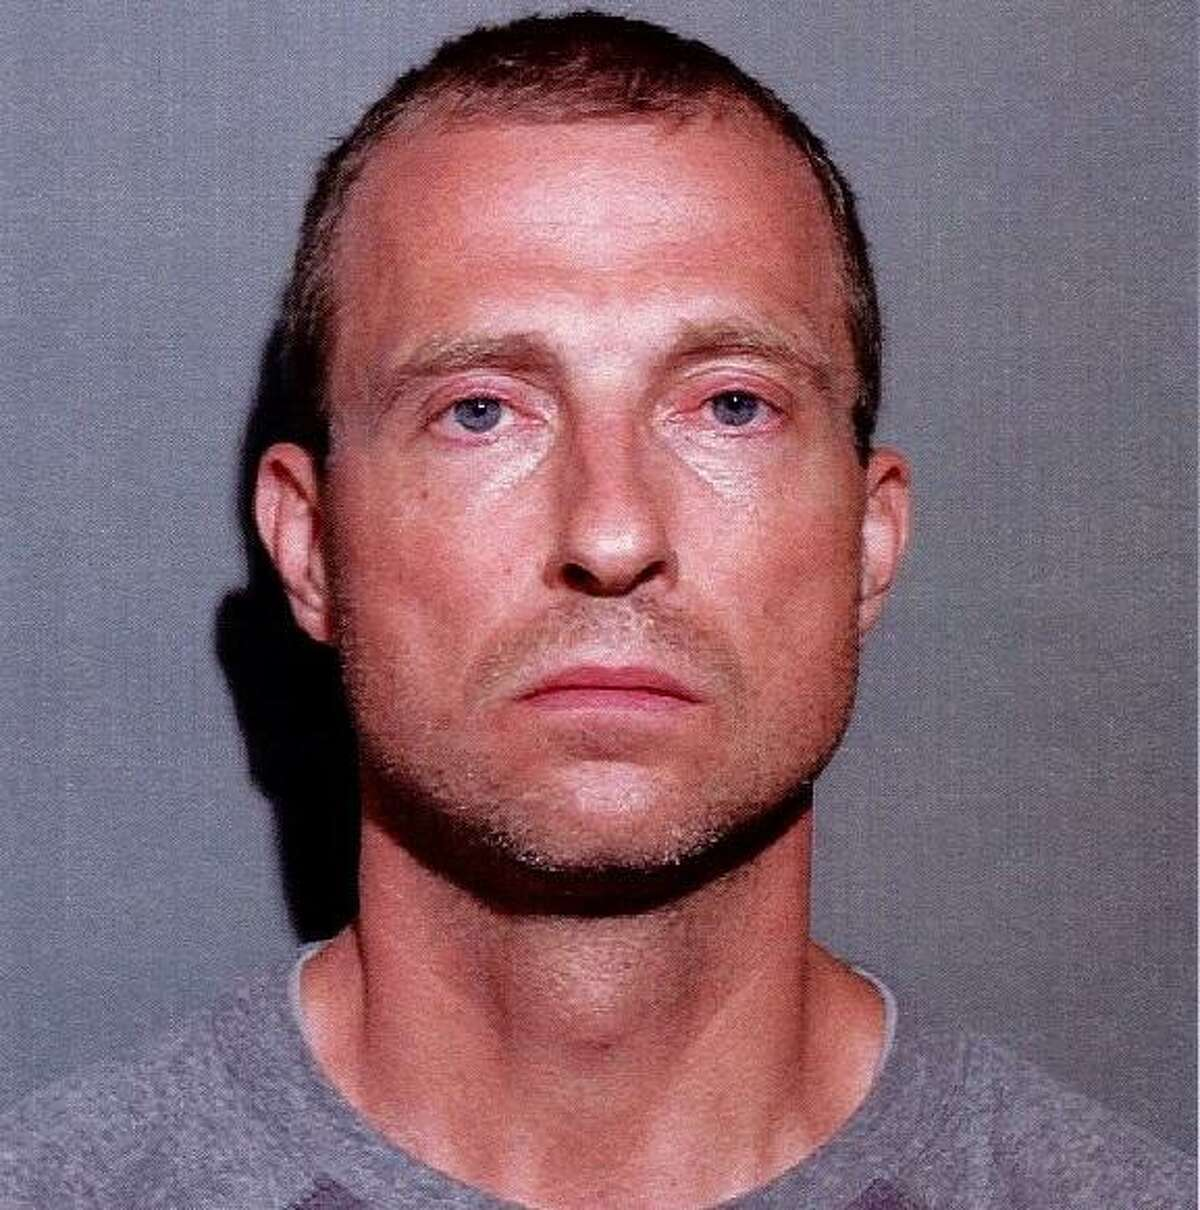 Scott Palmenta, 45, of Kent Road in New Milford, CT was arrested in Waveny Park in New Canaan, CT for attempting to break into cars on Nov. 16, 2016. Palmenta was then turned over to police in Darien, CT for charges stemming from incidents in Darien.